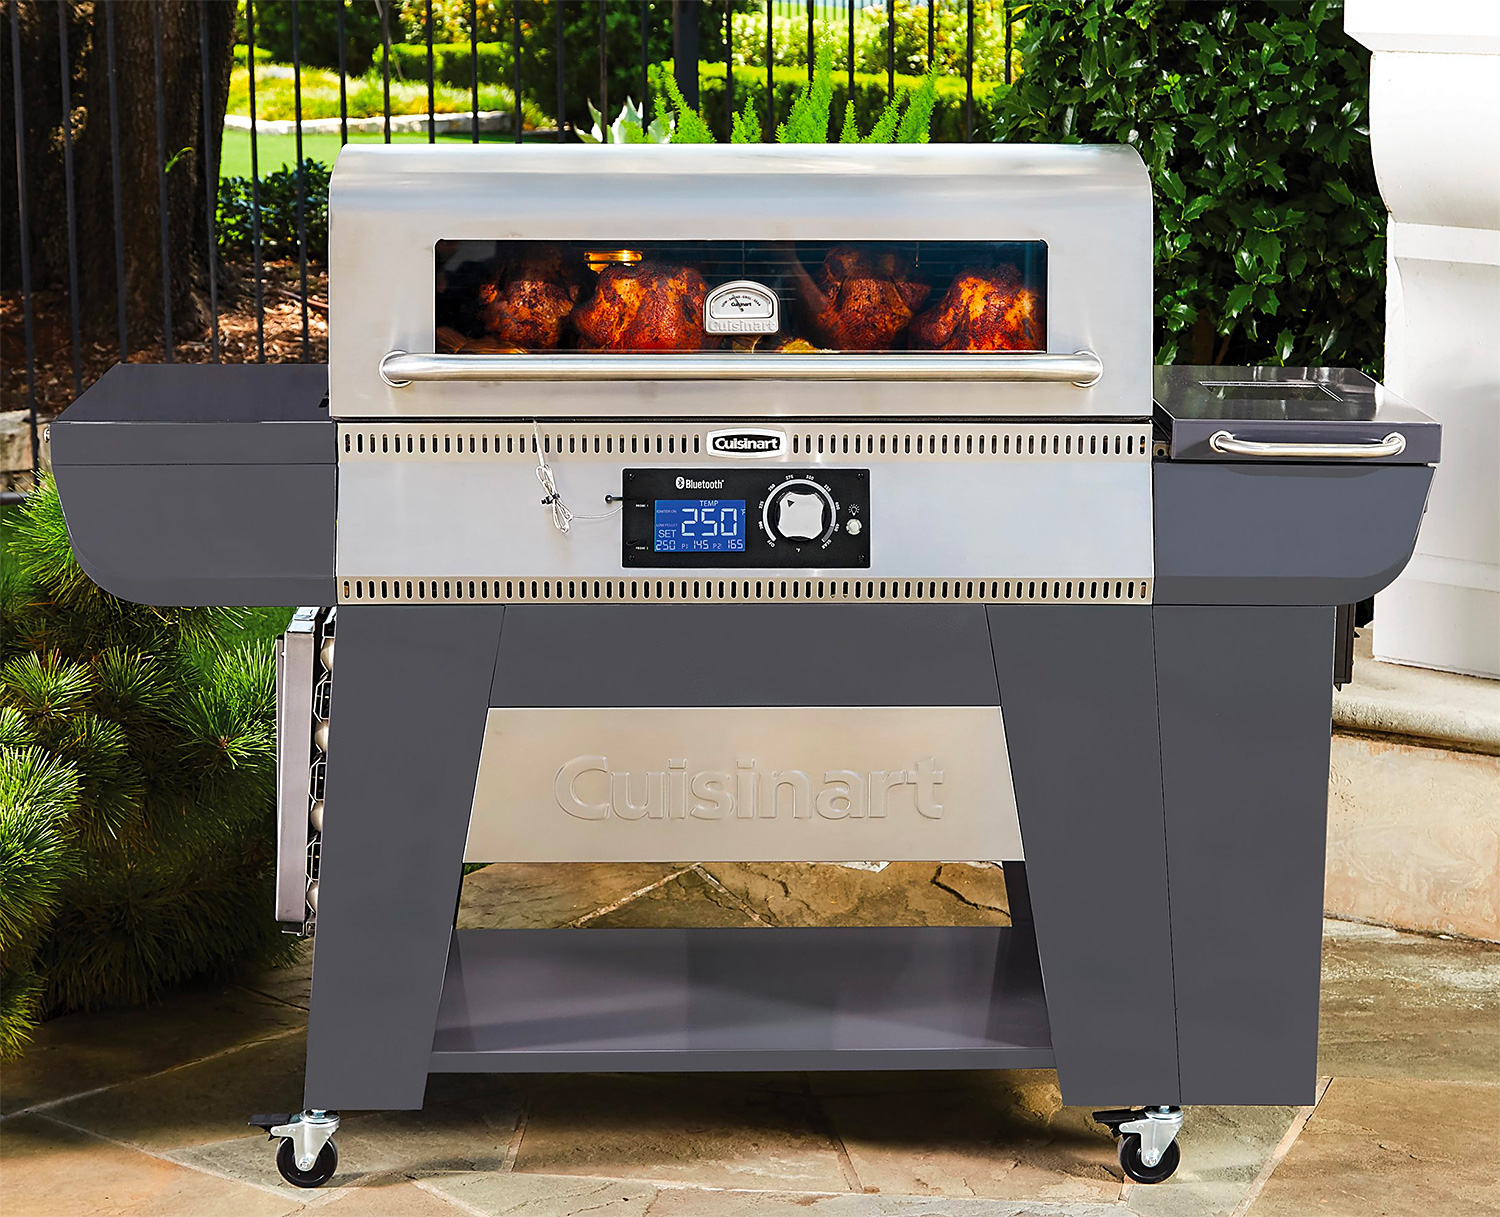 Cuisinart's Woodcreek Pellet Grill Cooks with Wood or Charcoal at werd.com